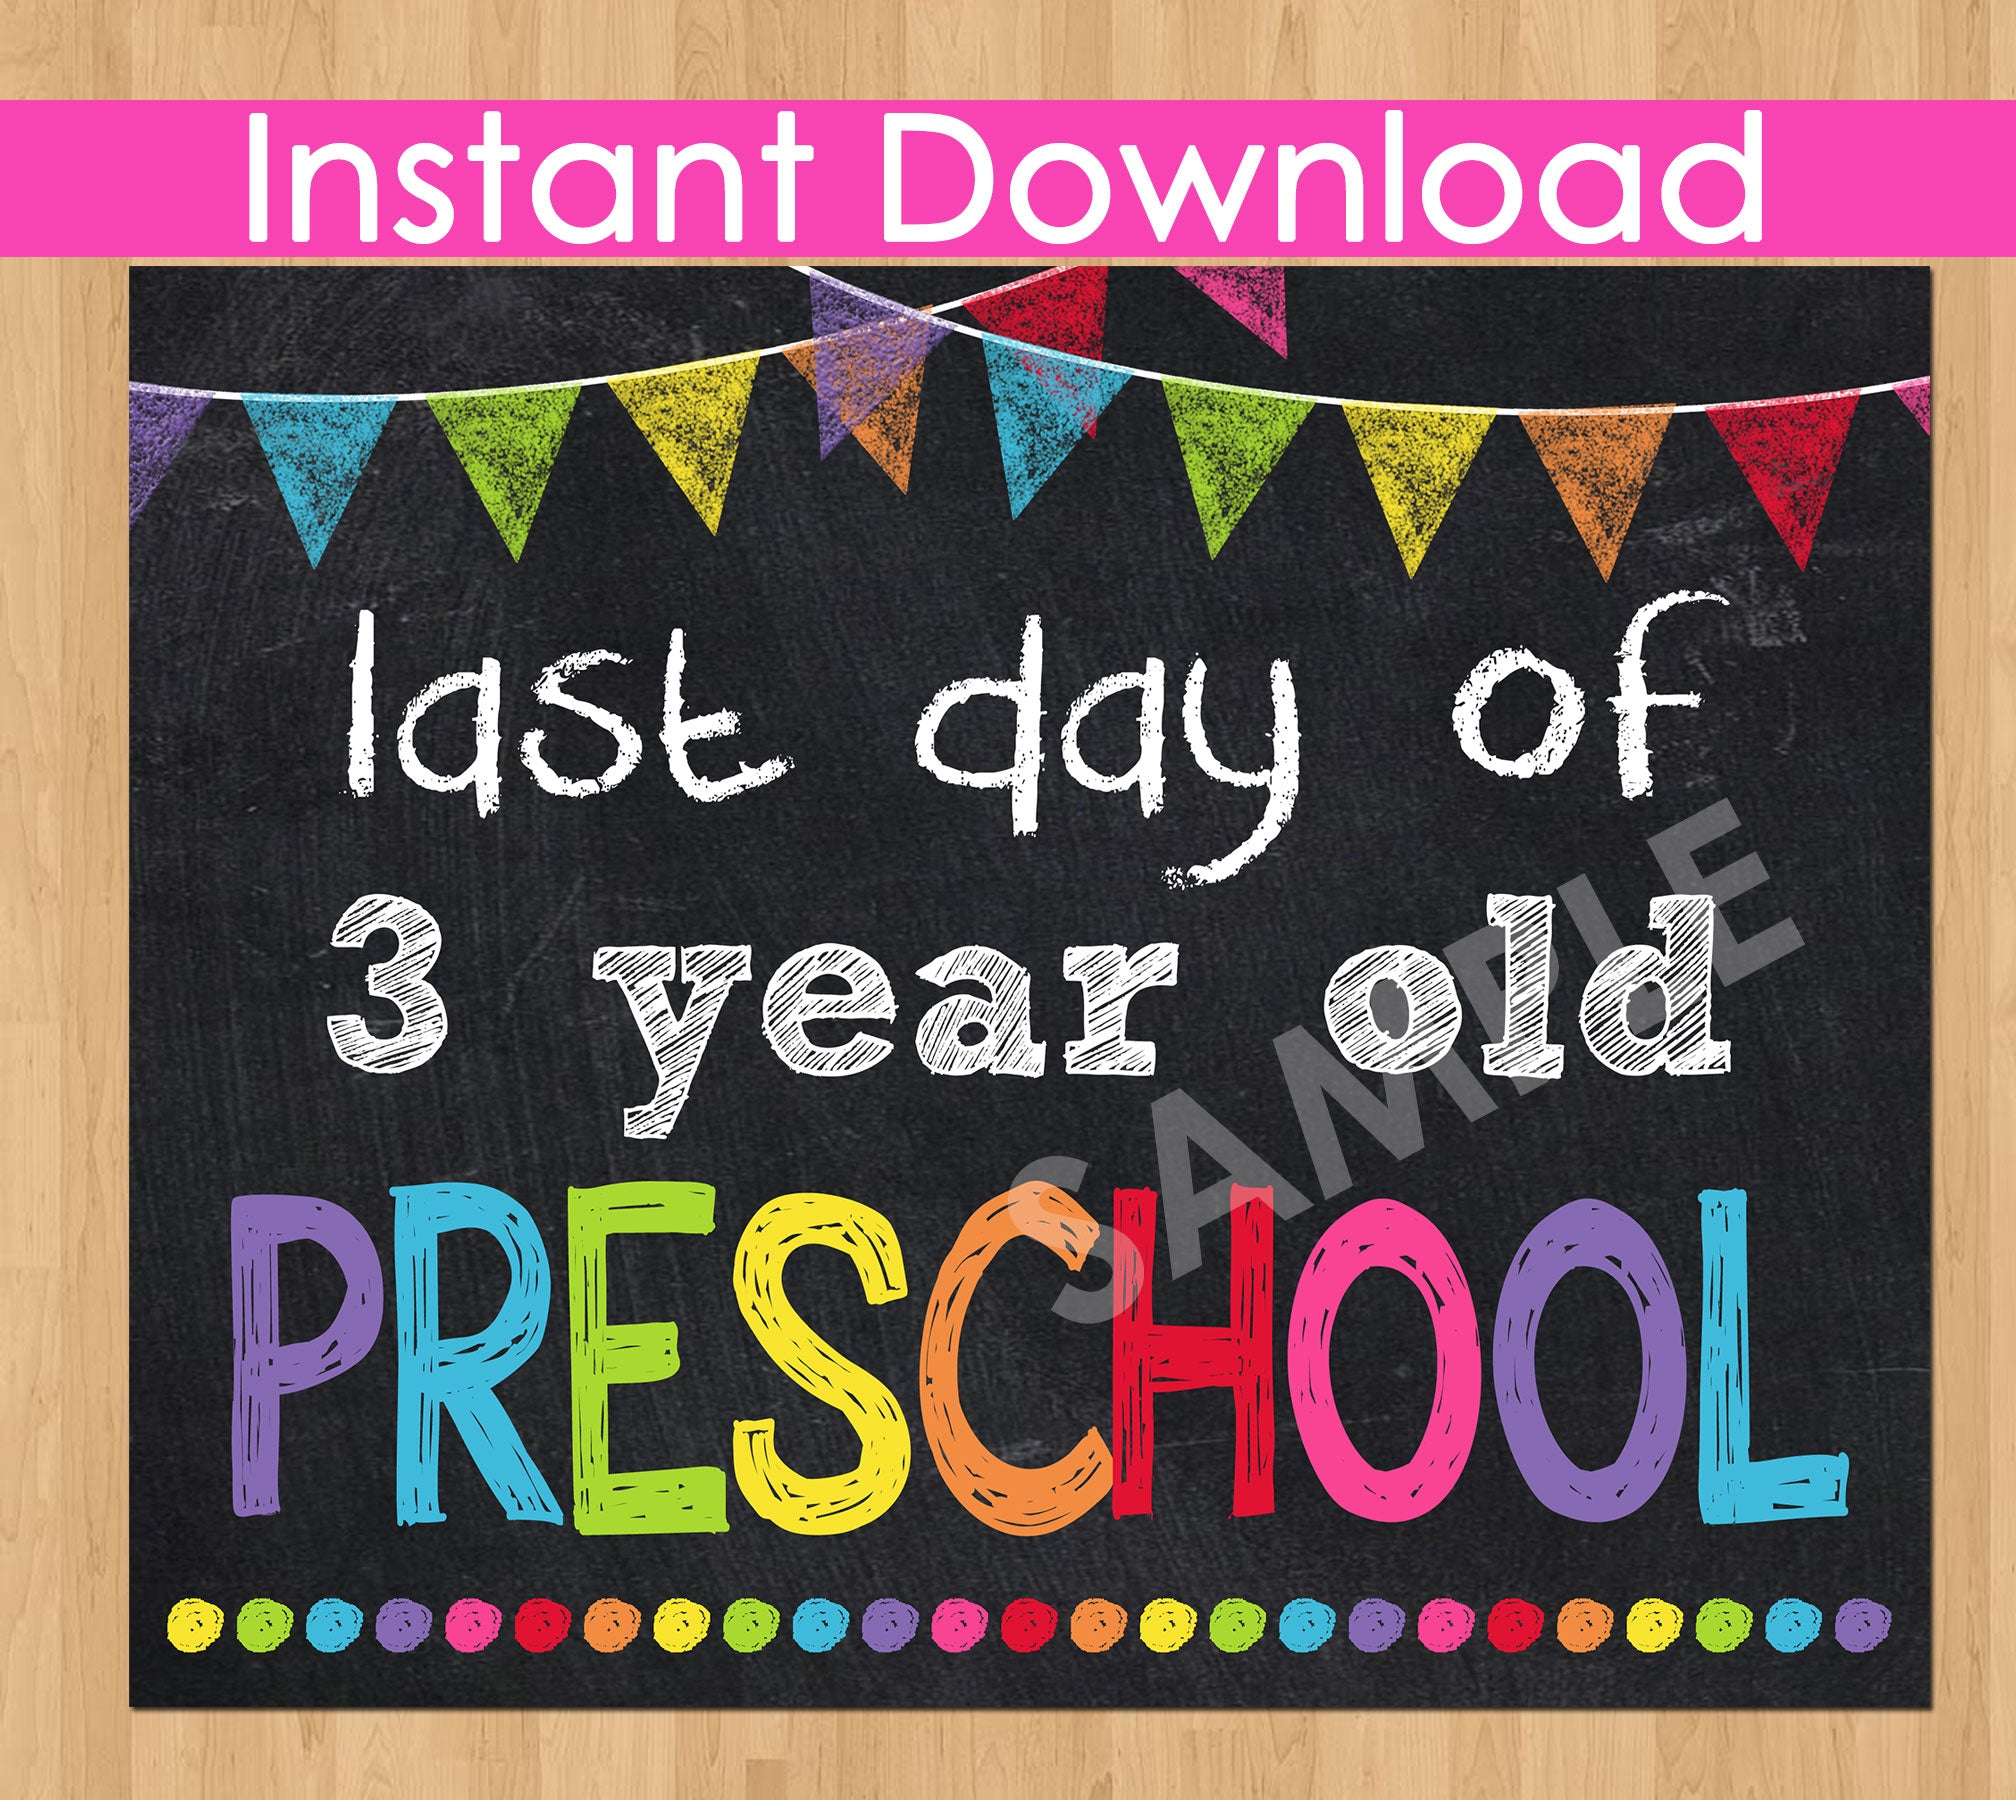 Last Day of 3 Year Old Preschool INSTANT DOWNLOAD, Last Day of School Chalkboard Sign Printable Photo Prop, 3 yr old Preschool Graduation